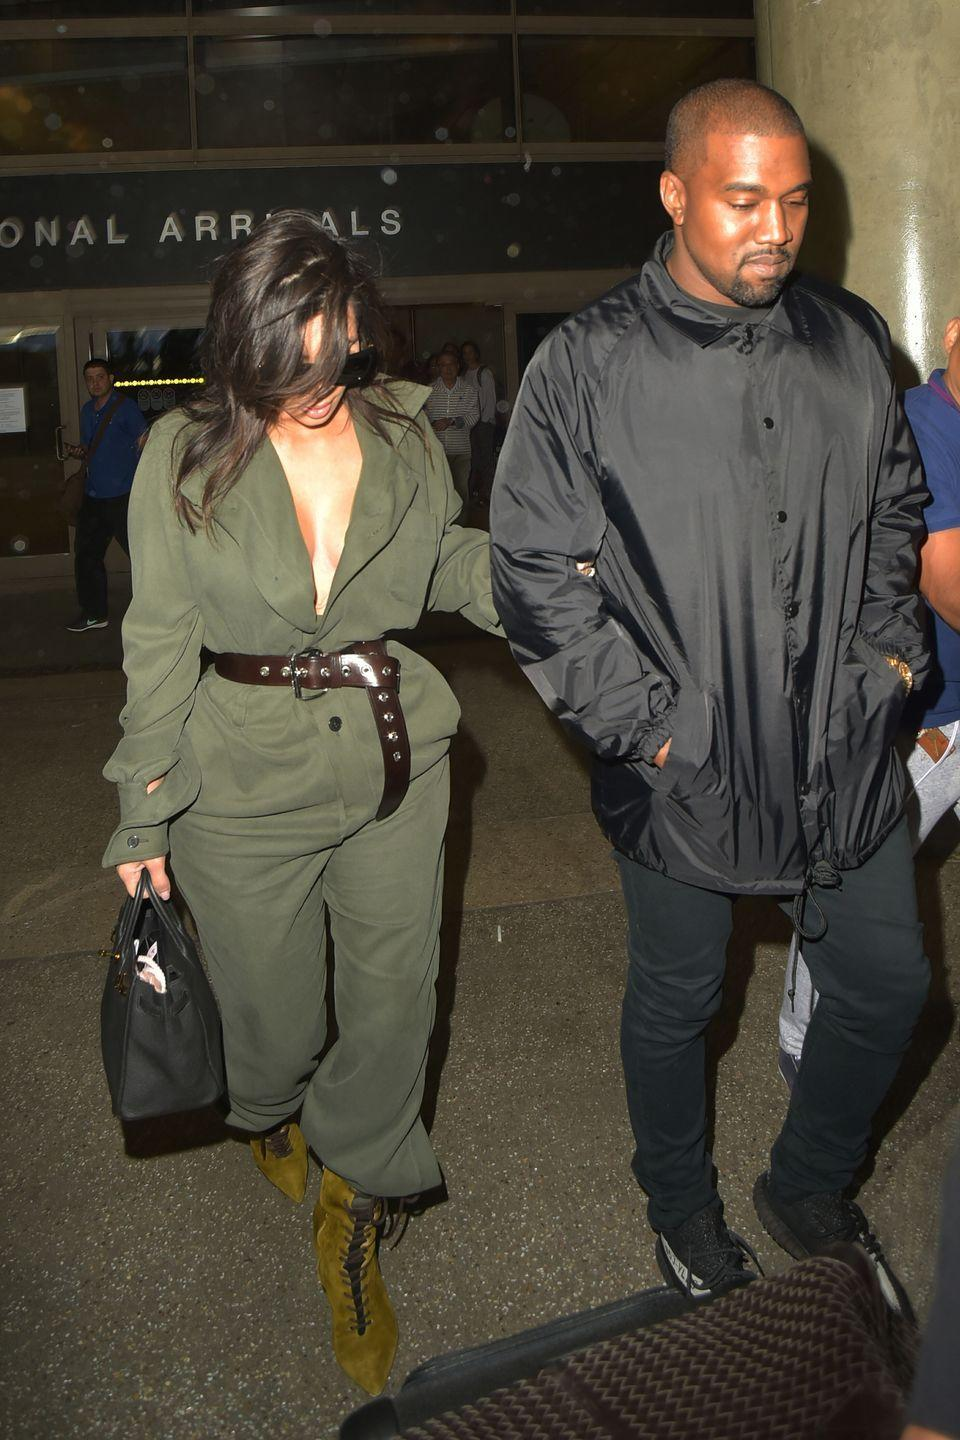 <p><strong>Kim Kardashian, 2016: </strong>Should've worn one of those Wolford bodysuits. At least they snap at the crotch for easy bathroom trips!</p>